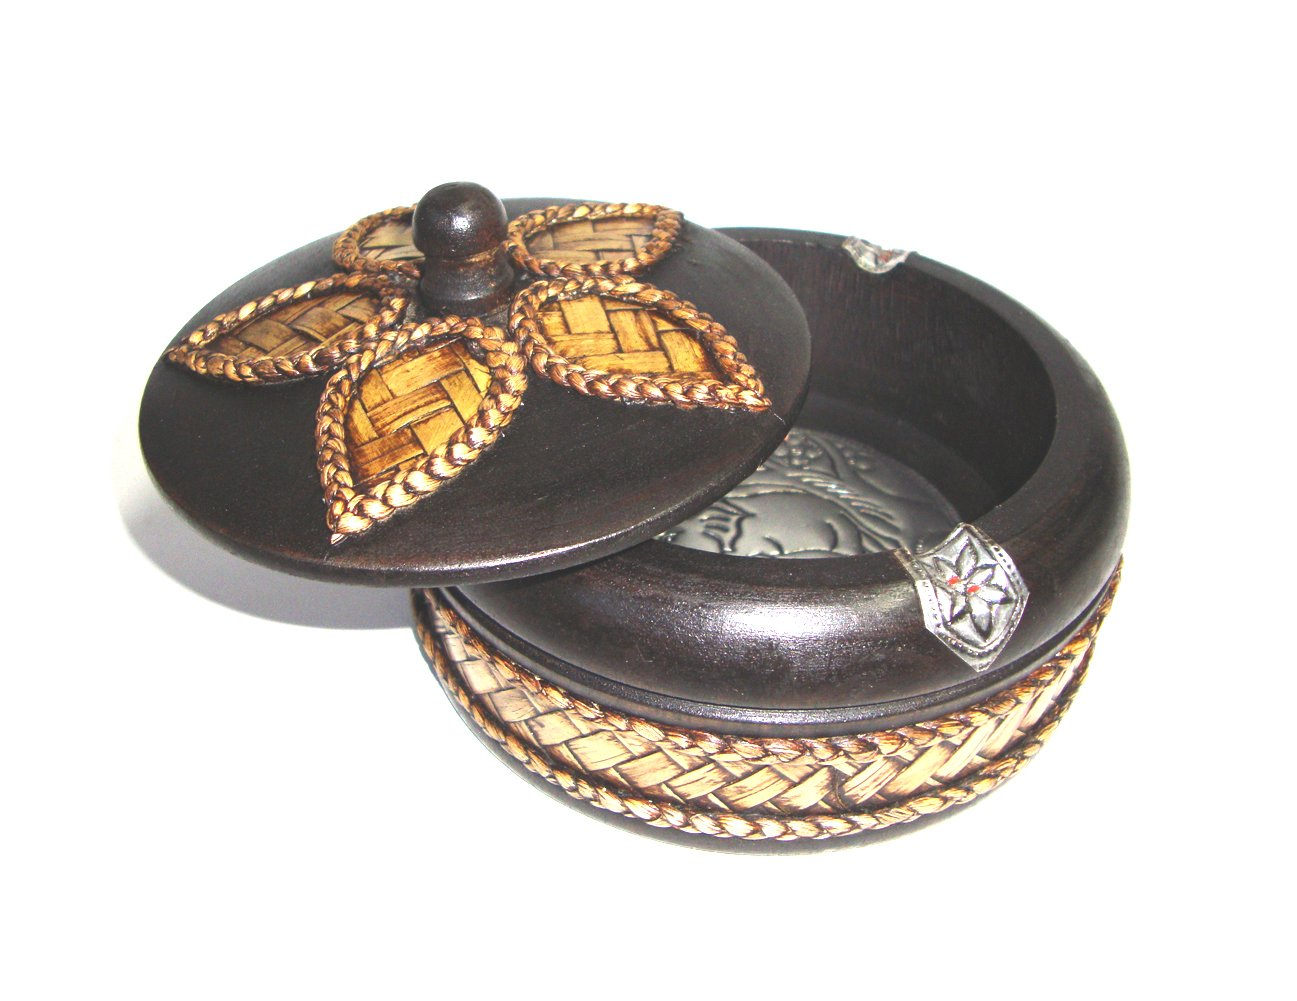 Ashtray Thai Carved Handicraft Round Mango Wood with Elephant Silver Plated and Covered By Bamboo with Lid Wooden Ashtray by Thailand